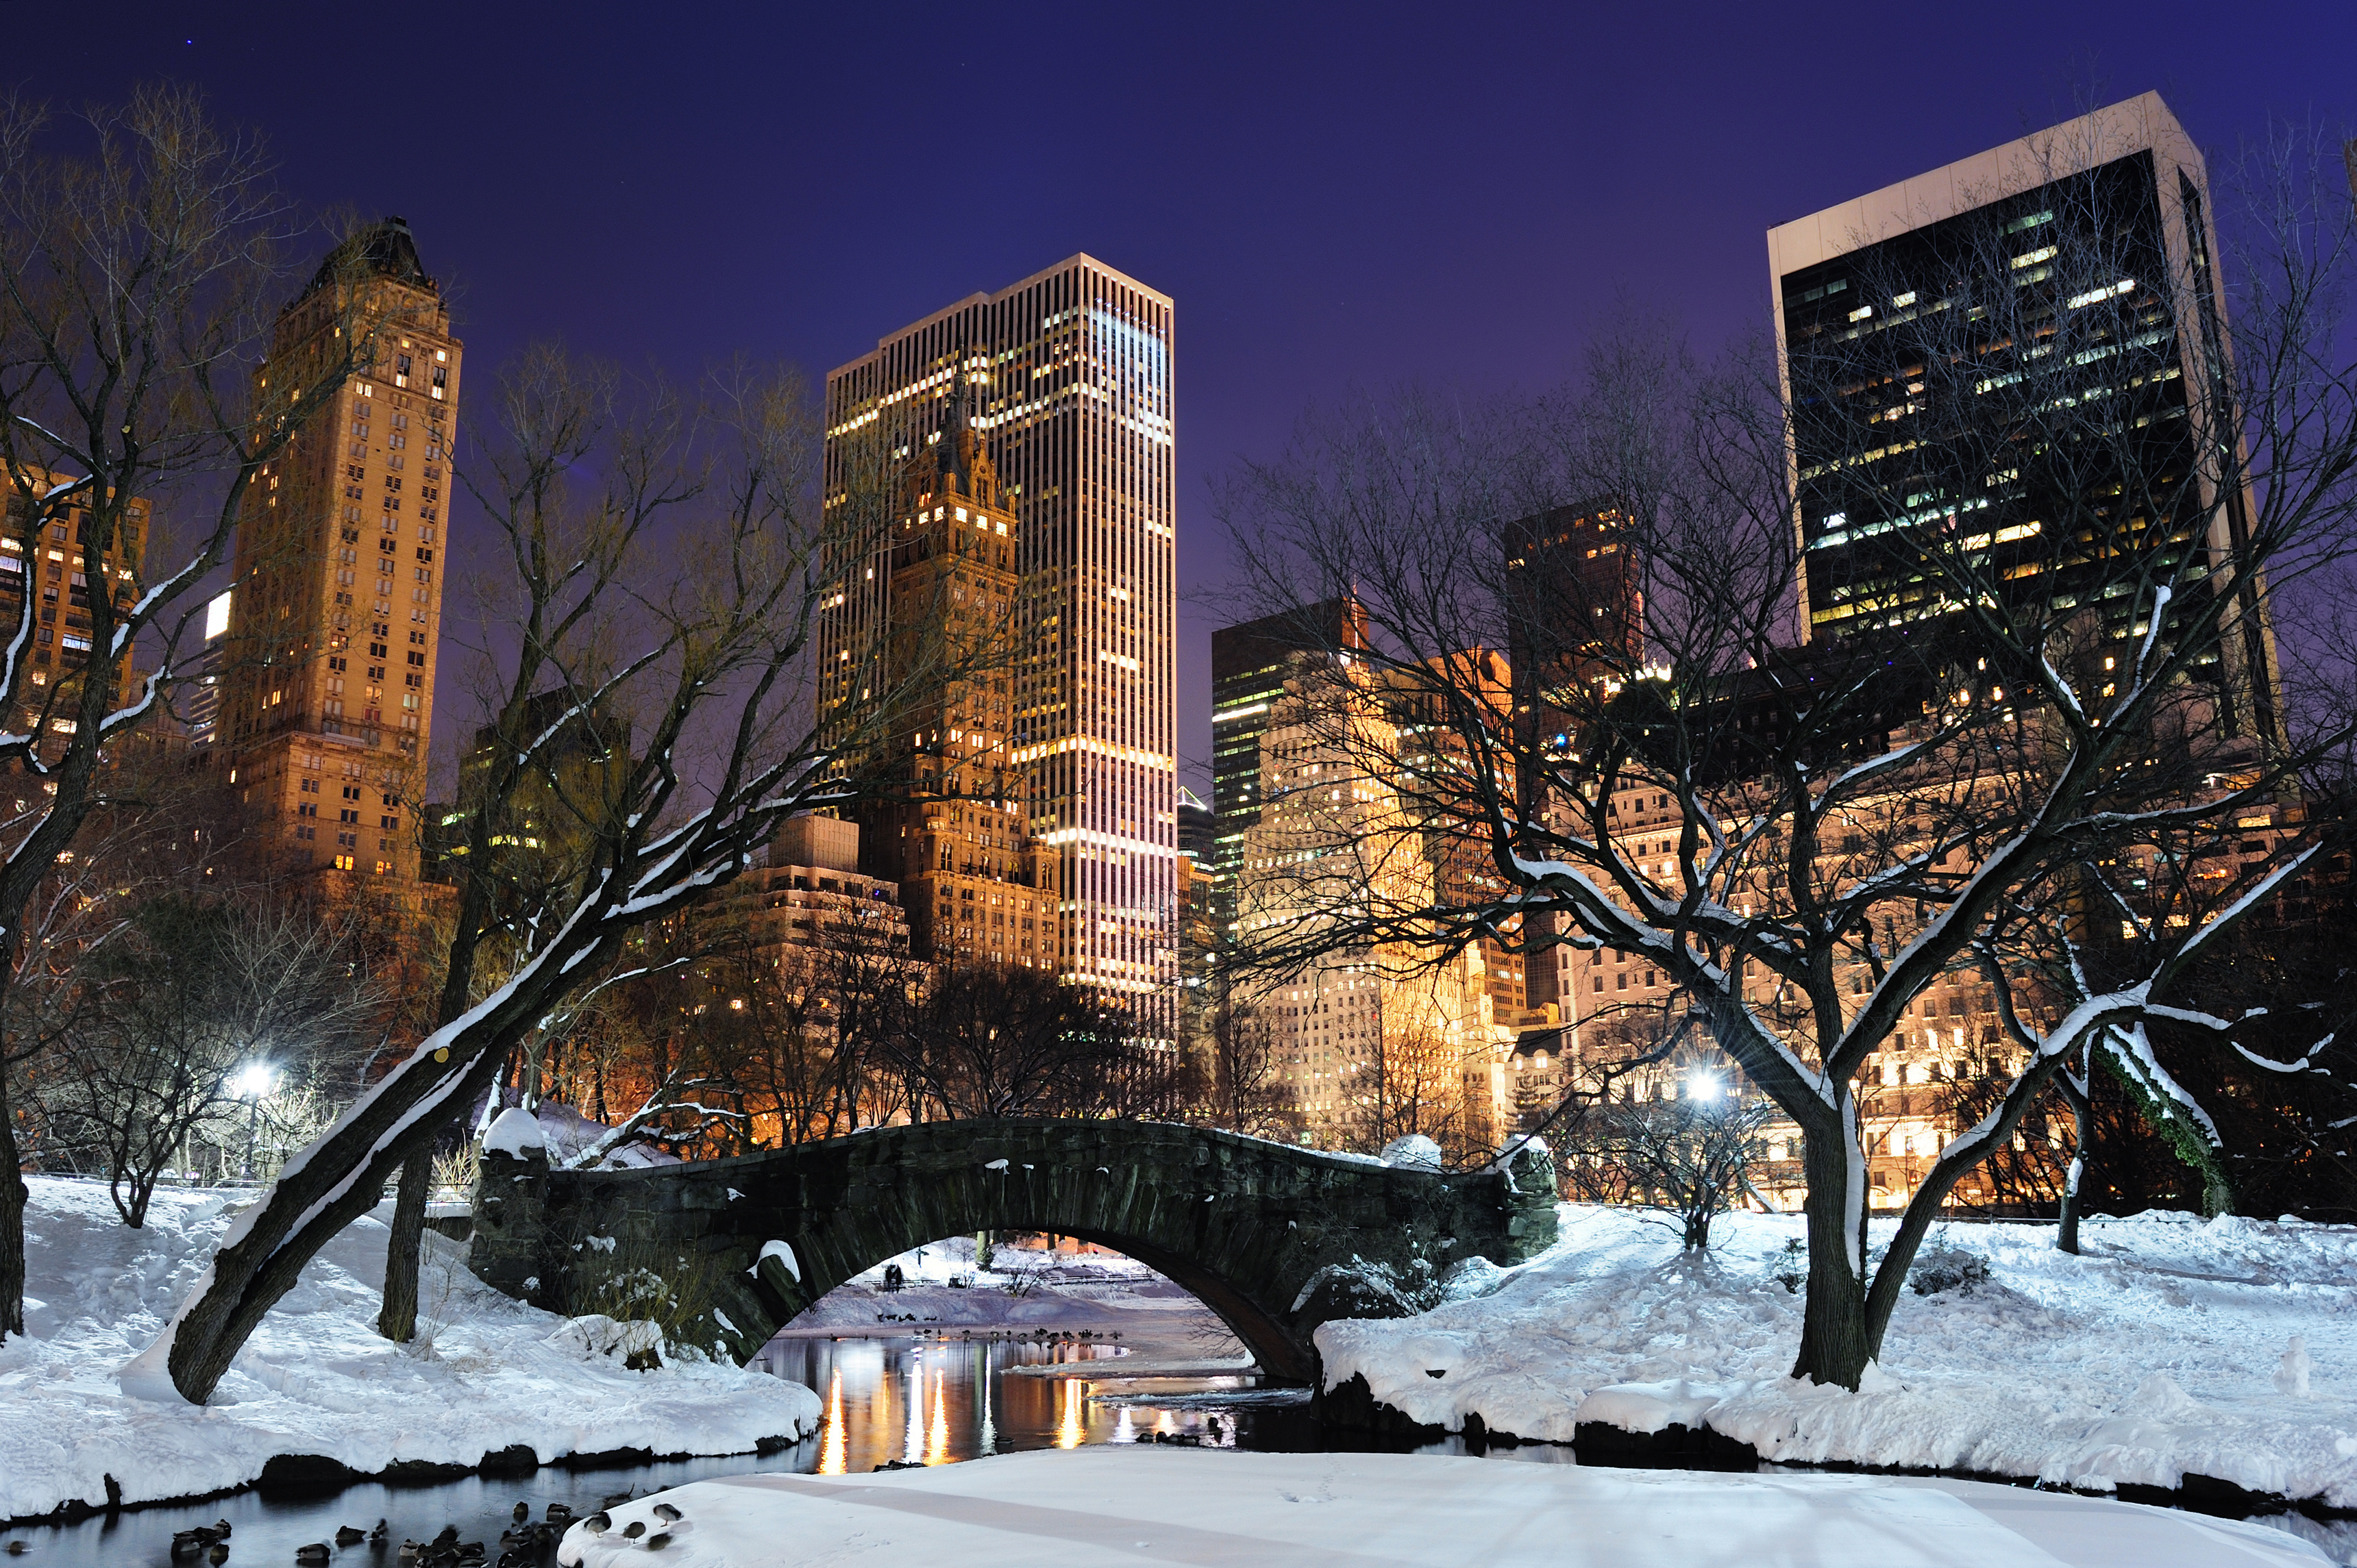 Outdoors Snow Building City Downtown resized by Ze Robot 3440x2289